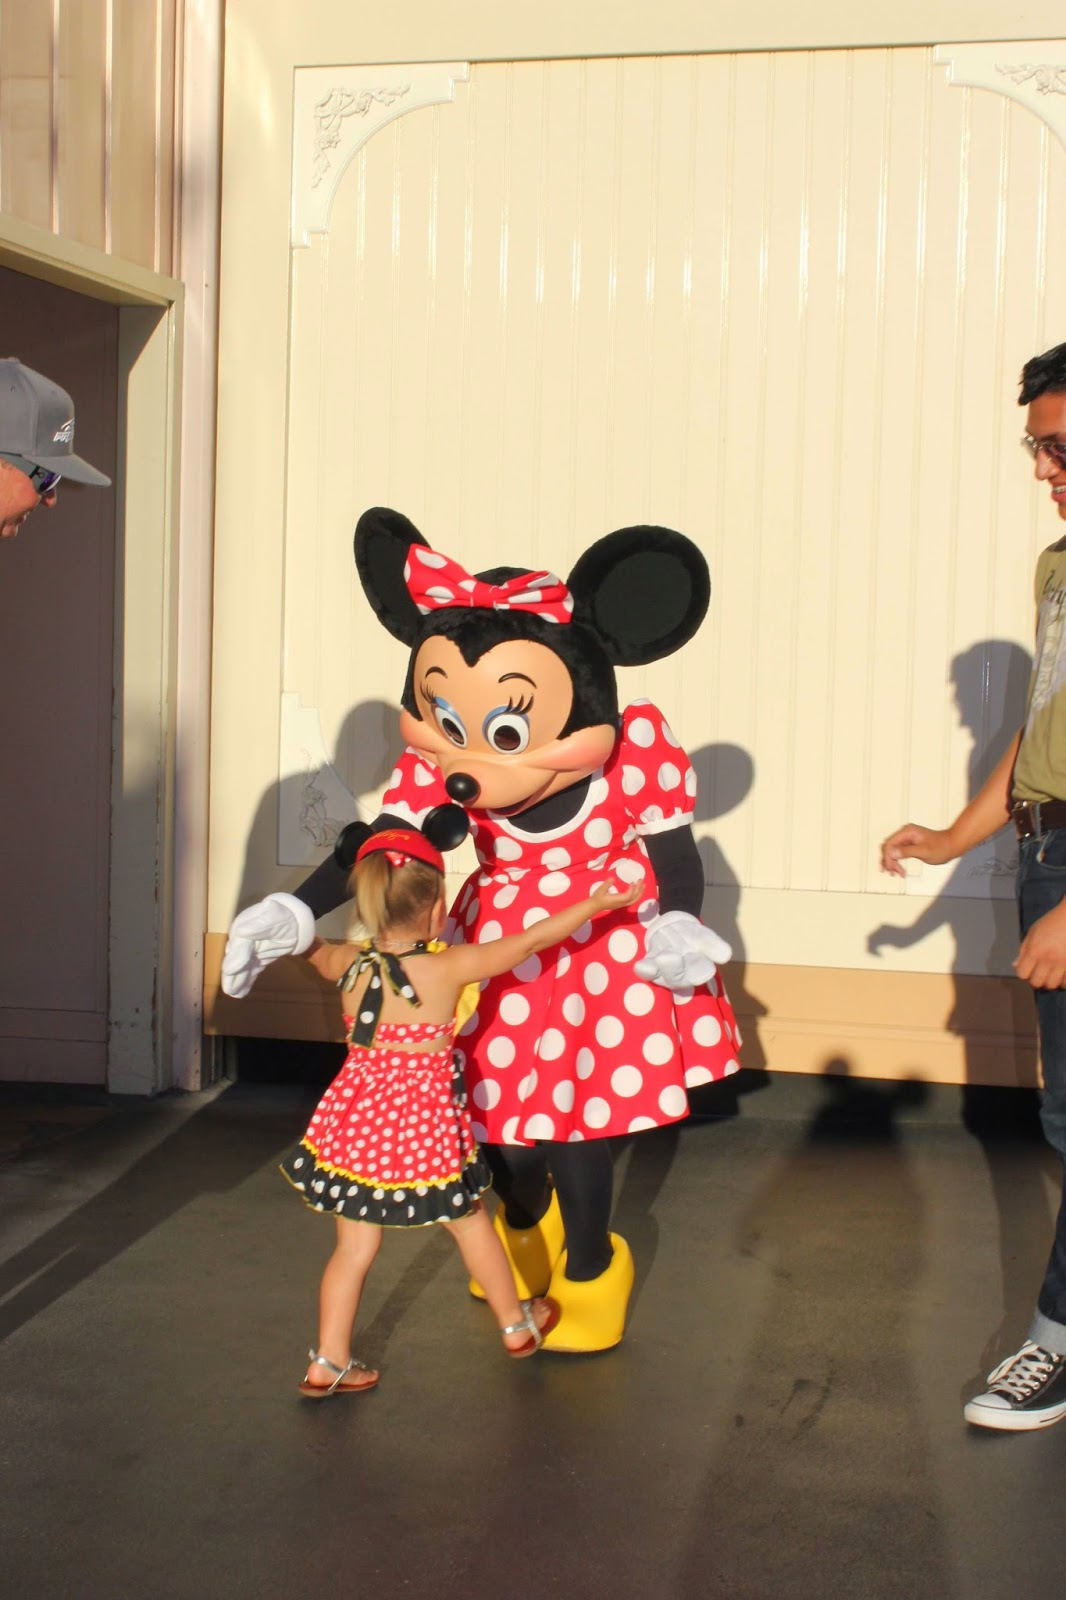 Naples Happiest The Real Housewife Of Fresno Disneyland The Happiest